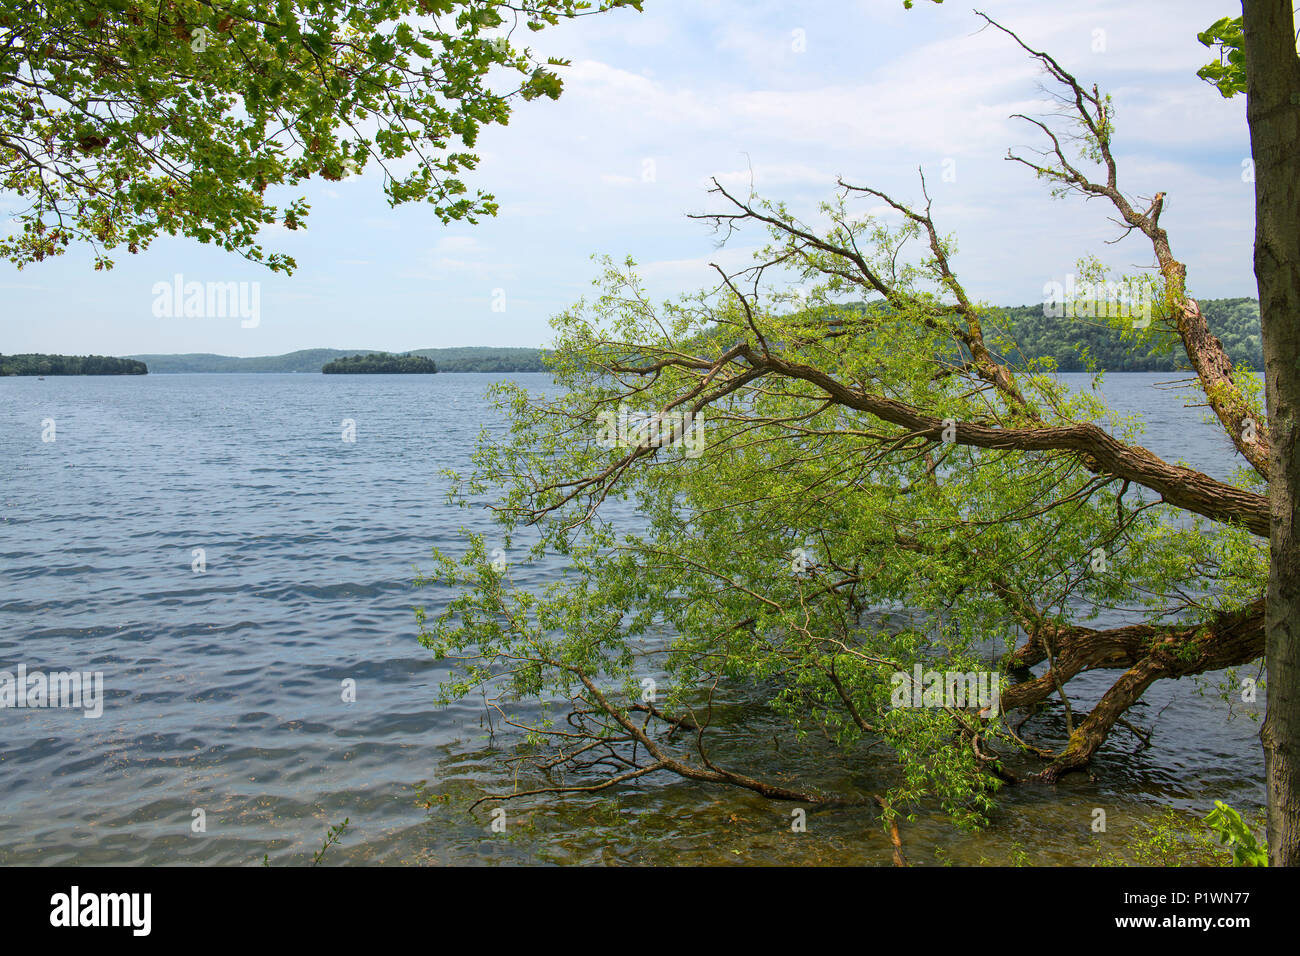 Beyond a fallen tree lies in a beautiful lake with islands and forested shores - Stock Image